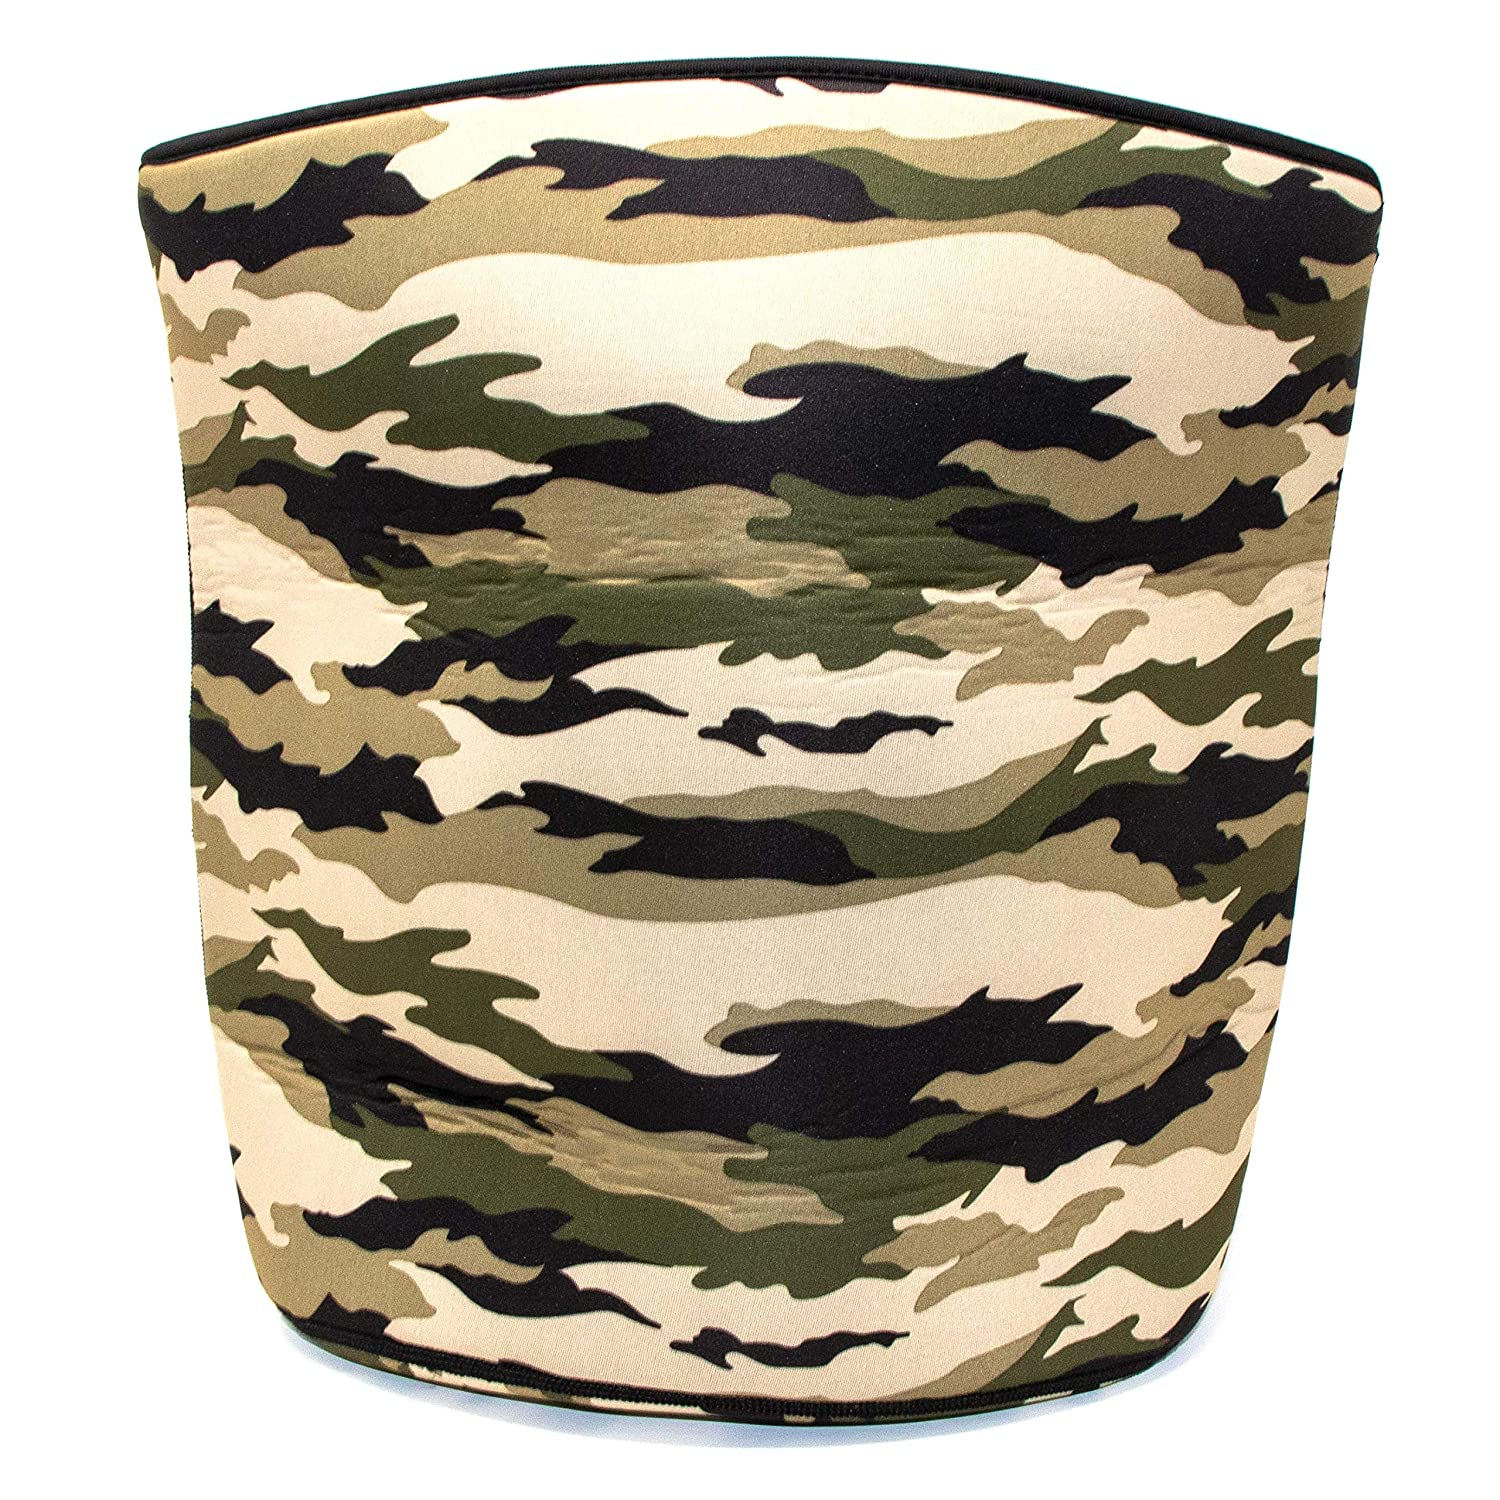 Bucket Cooler – 7mm Neoprene Sleeve for 5 Gallon Bucket Camouflage